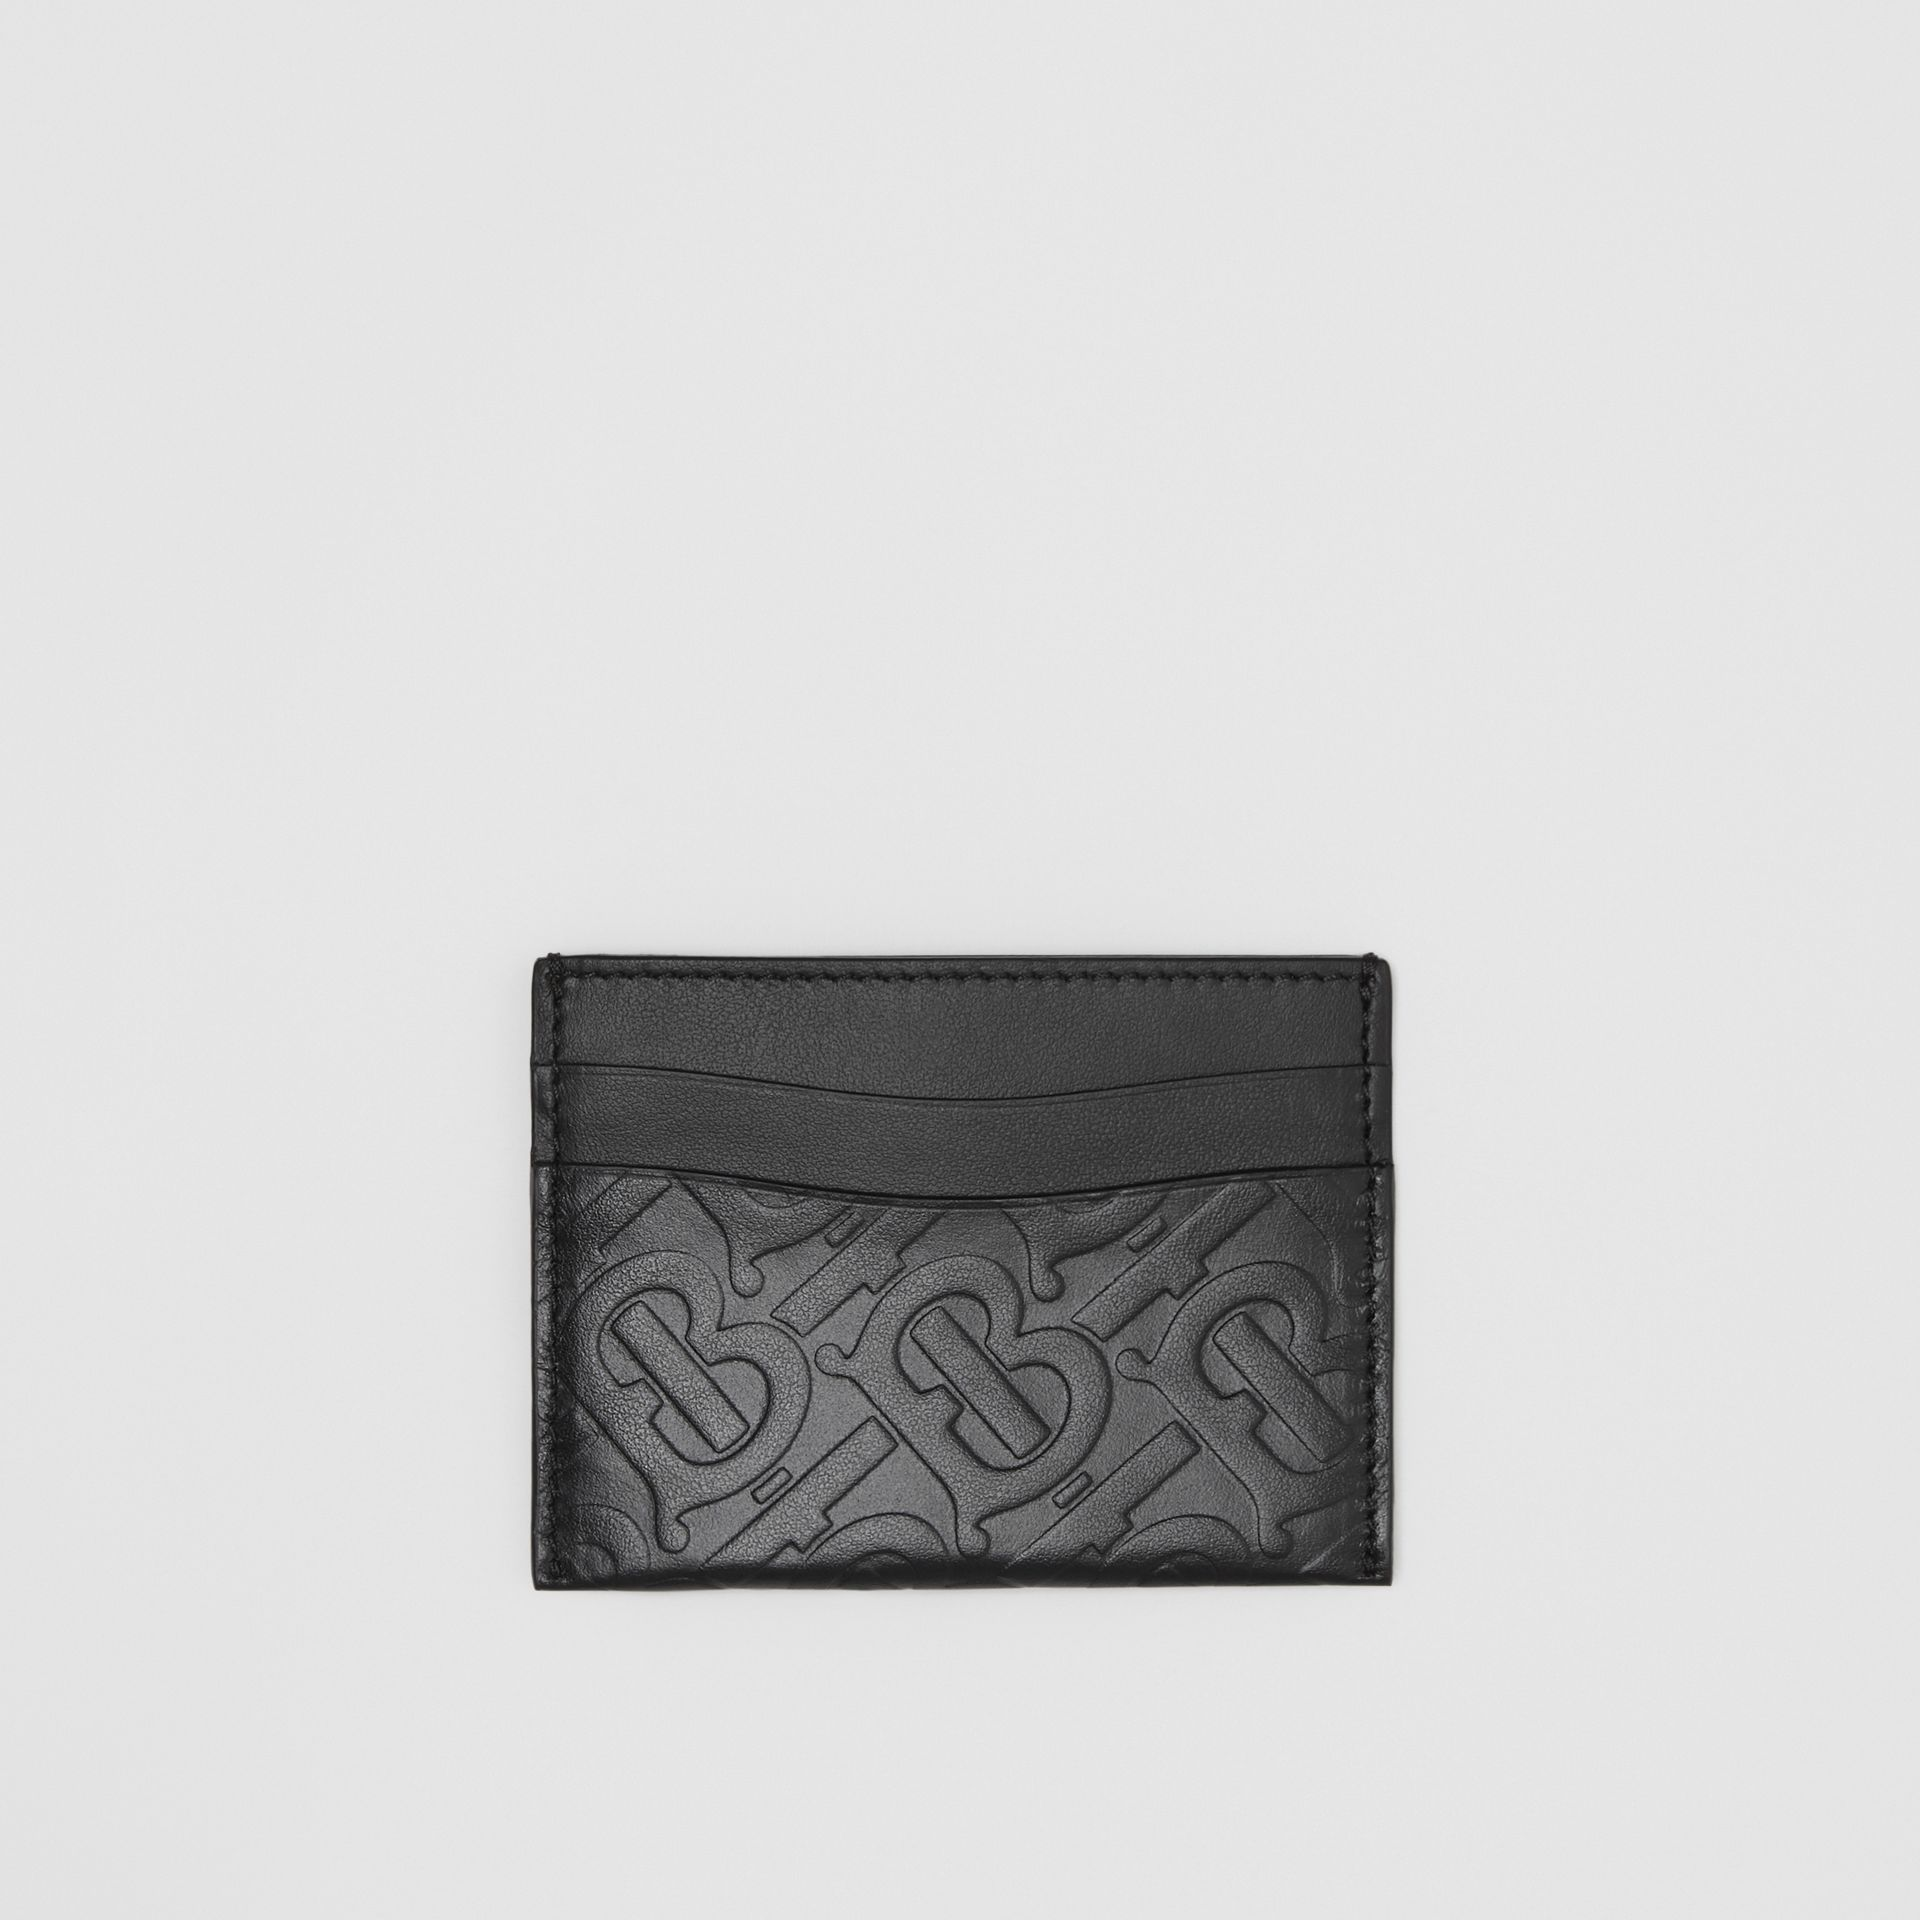 Porte-cartes en cuir Monogram (Noir) - Femme | Burberry - photo de la galerie 0